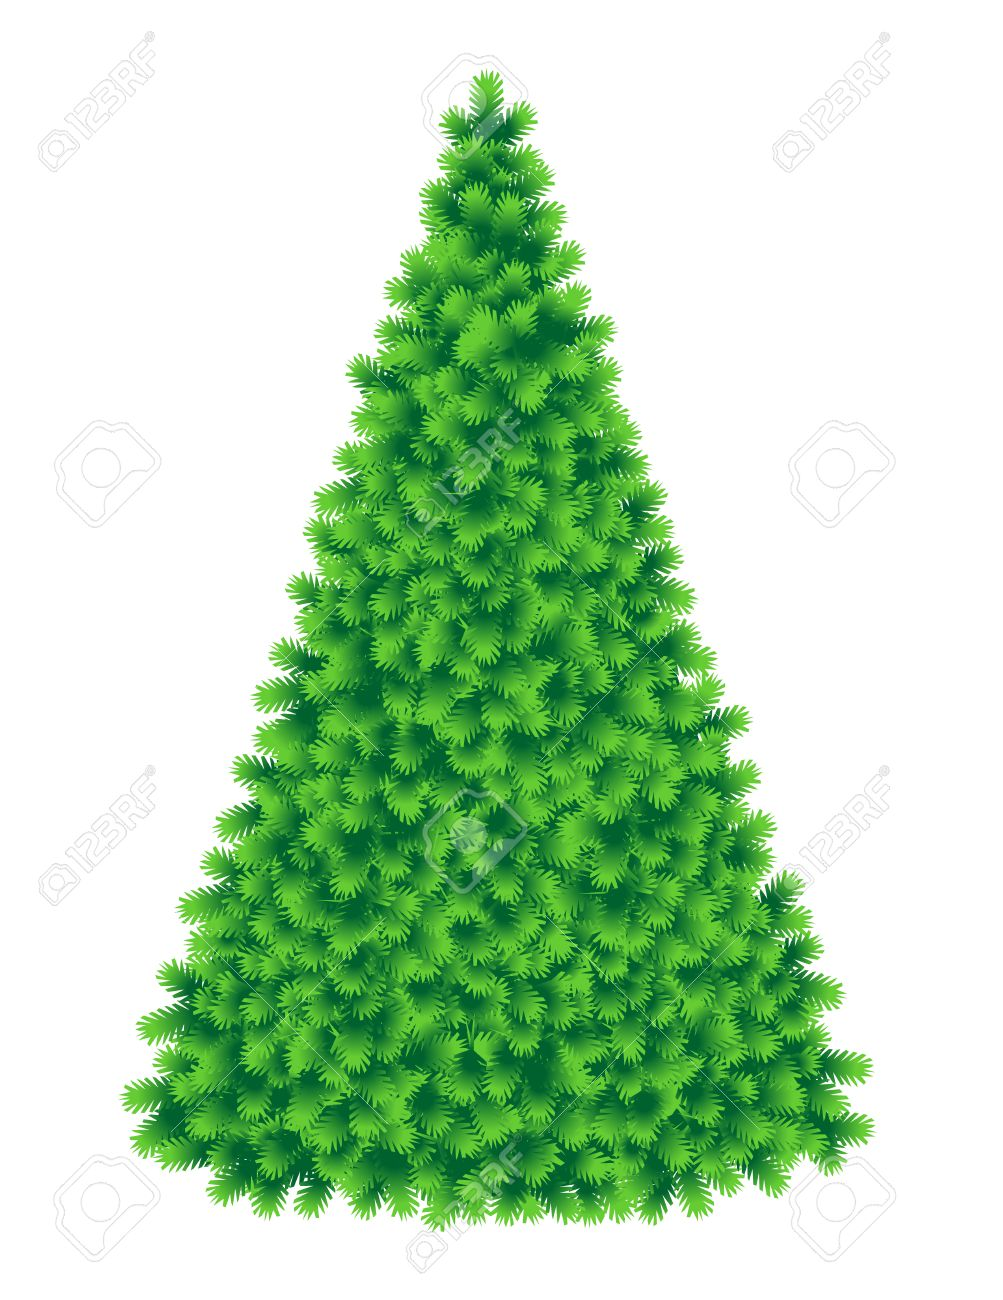 Christmas Trees Without Ornaments christmas tree, tall and fluffy, of live green color, without